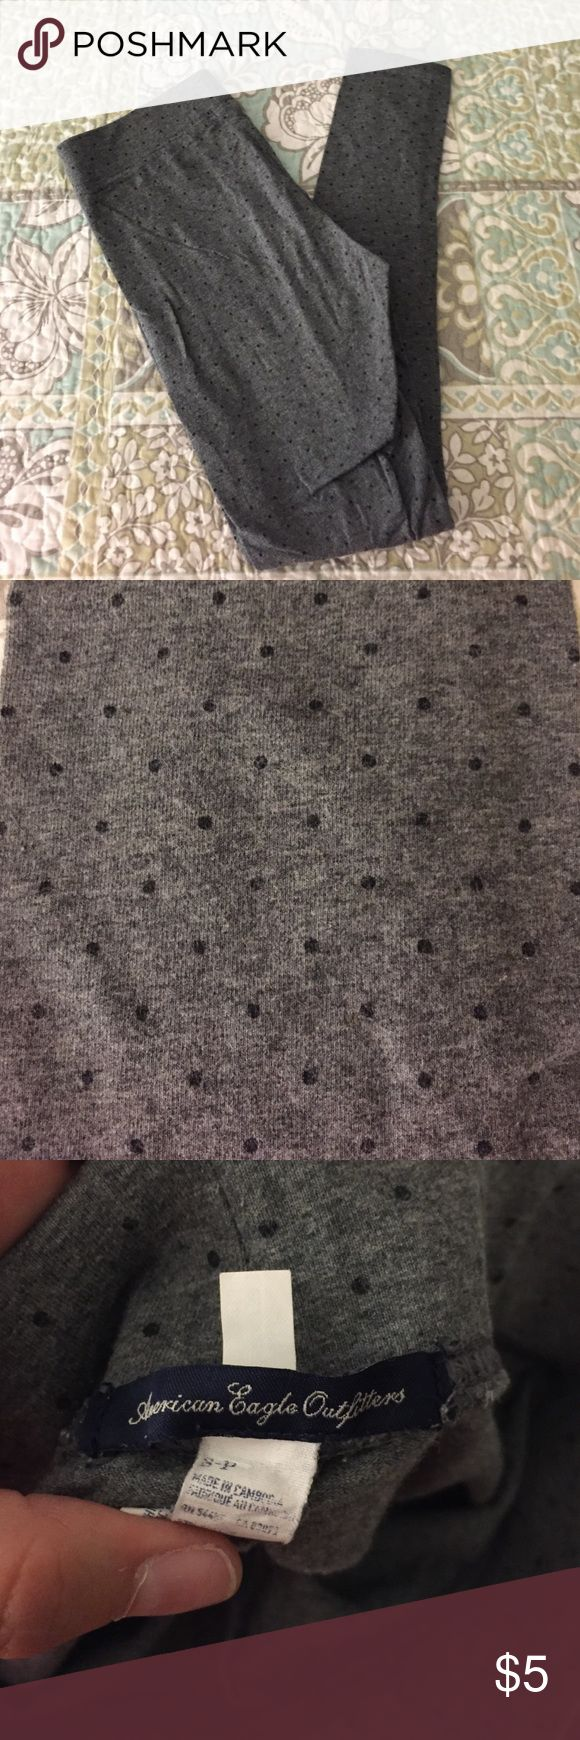 Polka dot leggins American Eagle cotton leggings. Gray with navy dots. Worn and washed American Eagle Outfitters Pants Leggings